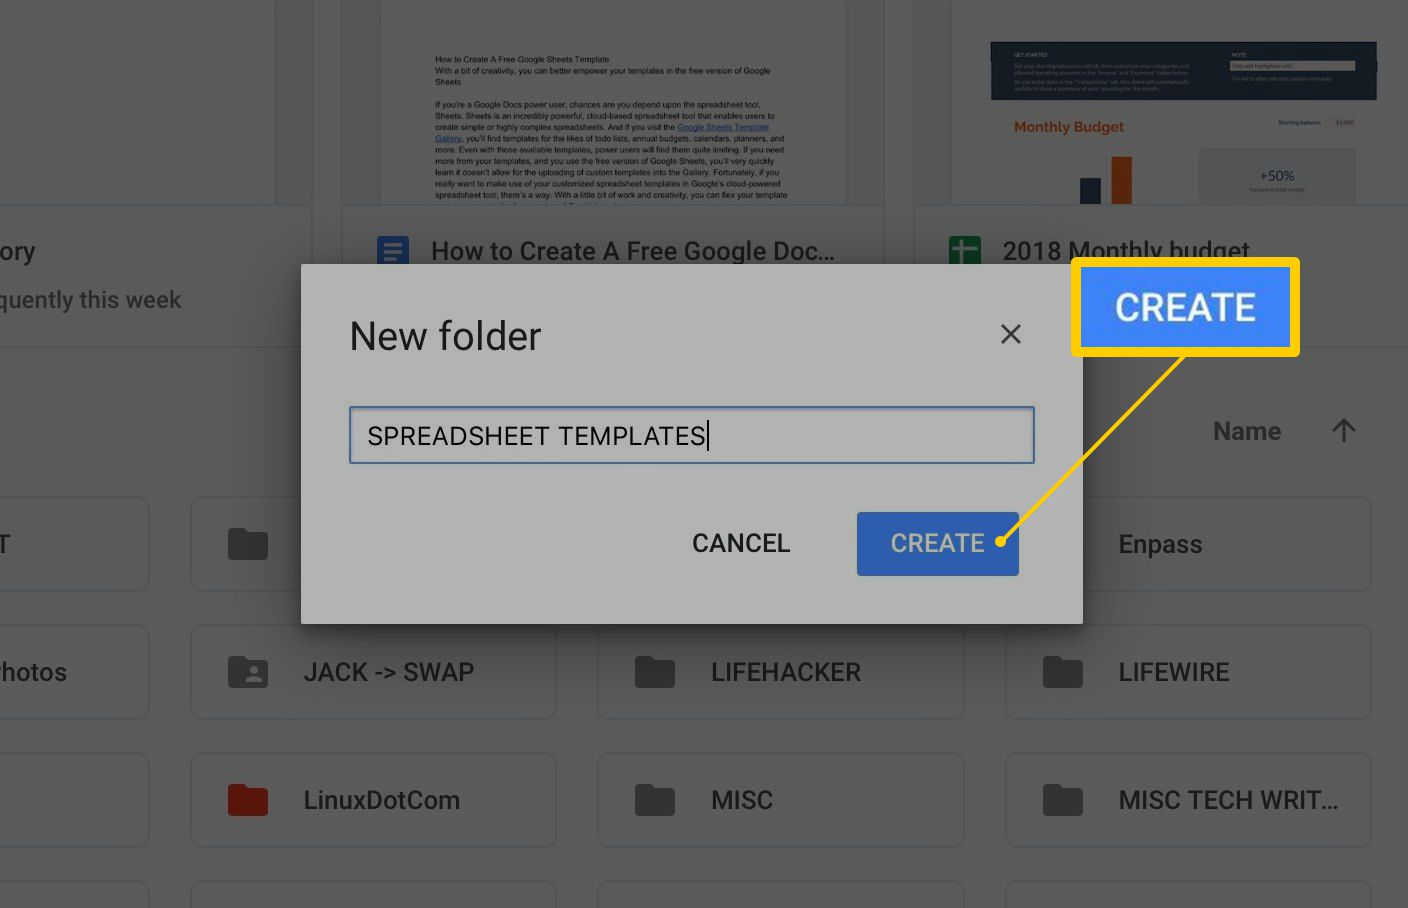 Create button to name new folder in Google Drive